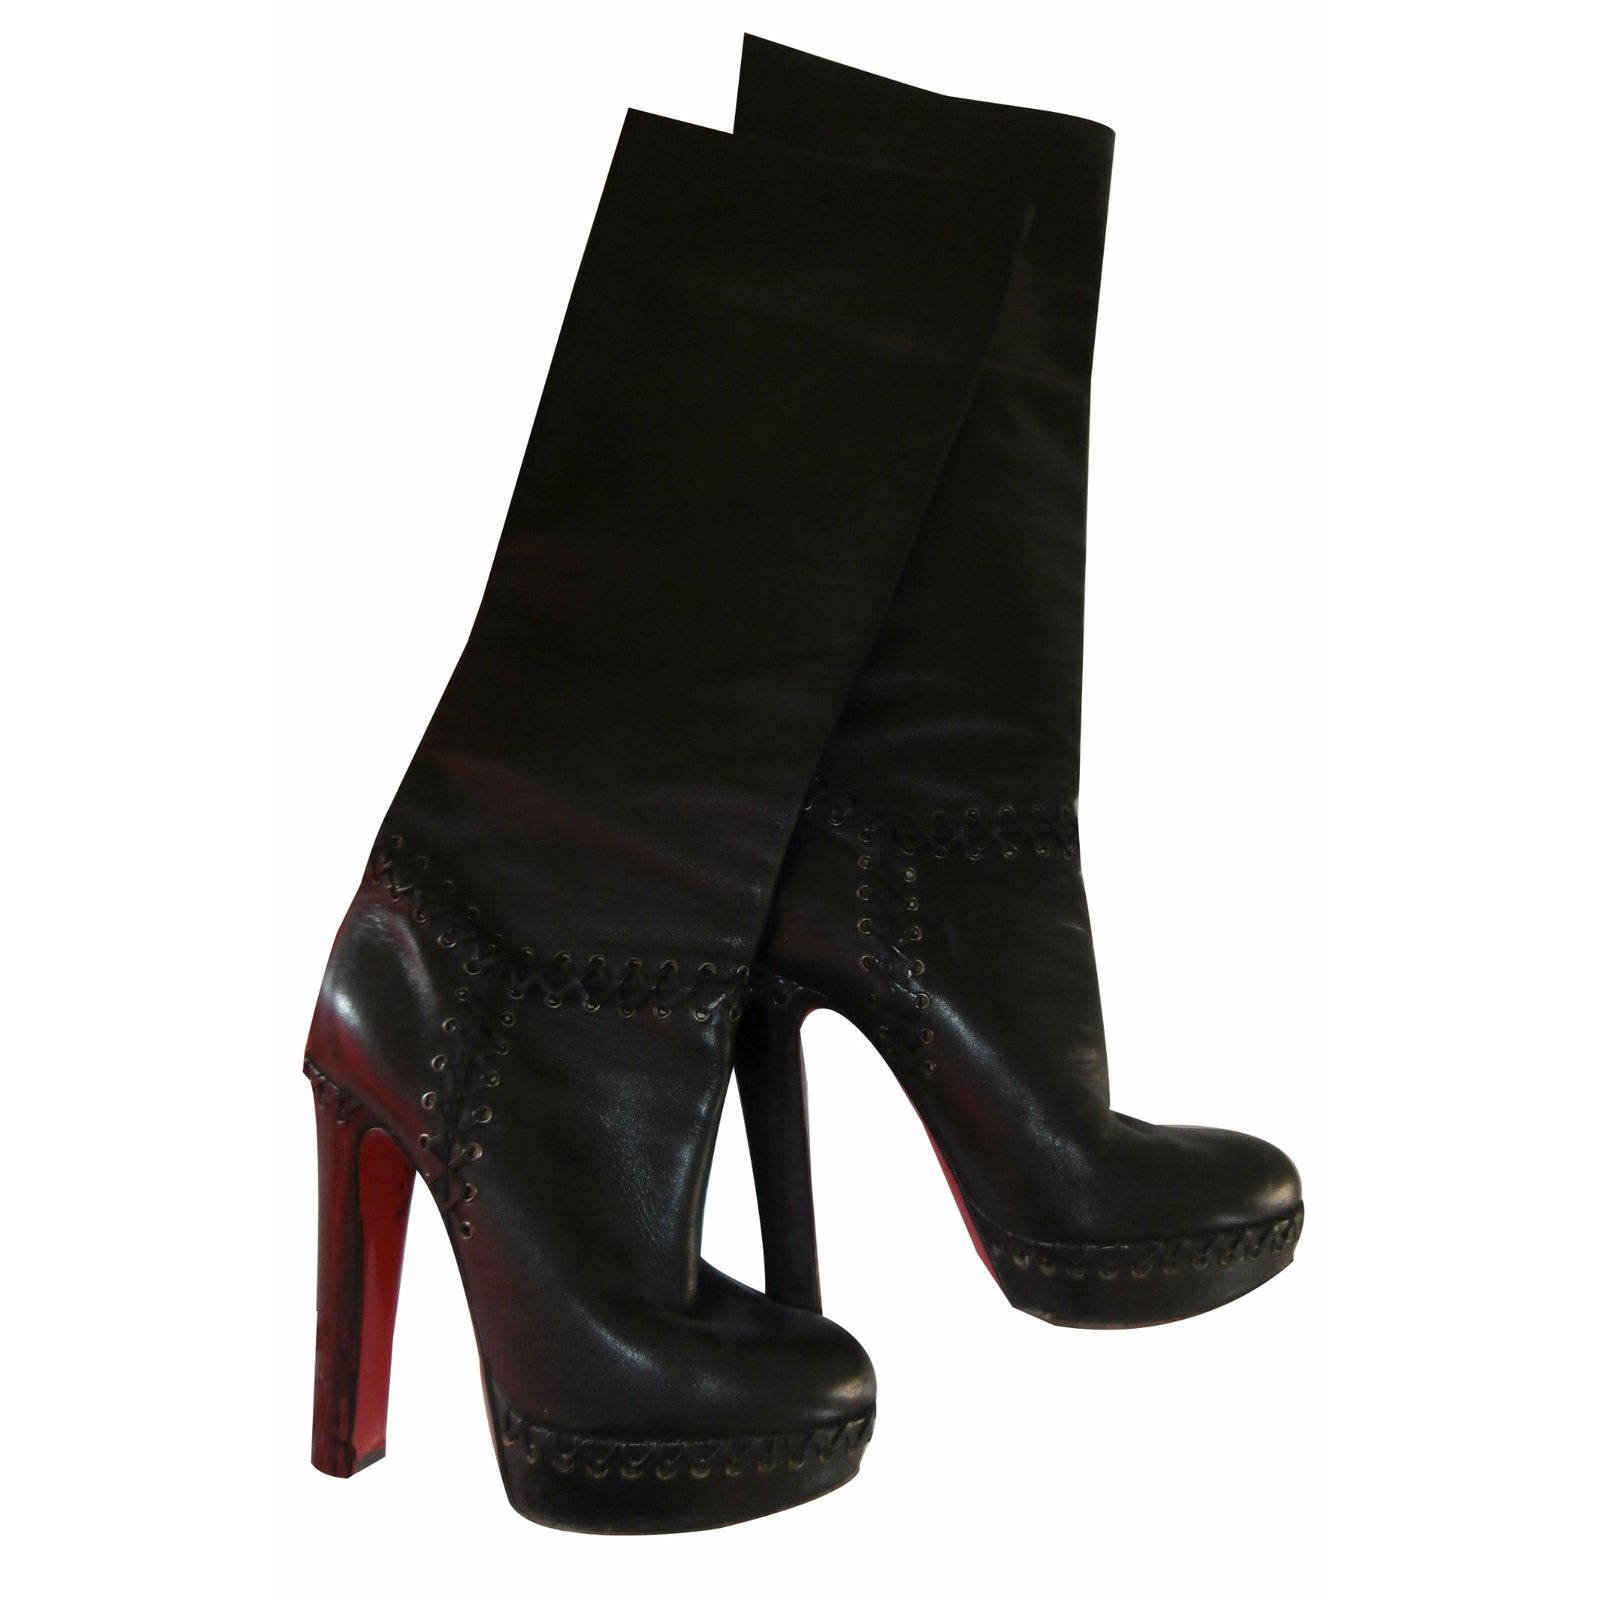 795bbe6b18e3 ... italy christian louboutin boots boots leather black ref.17269 2d371  4446a